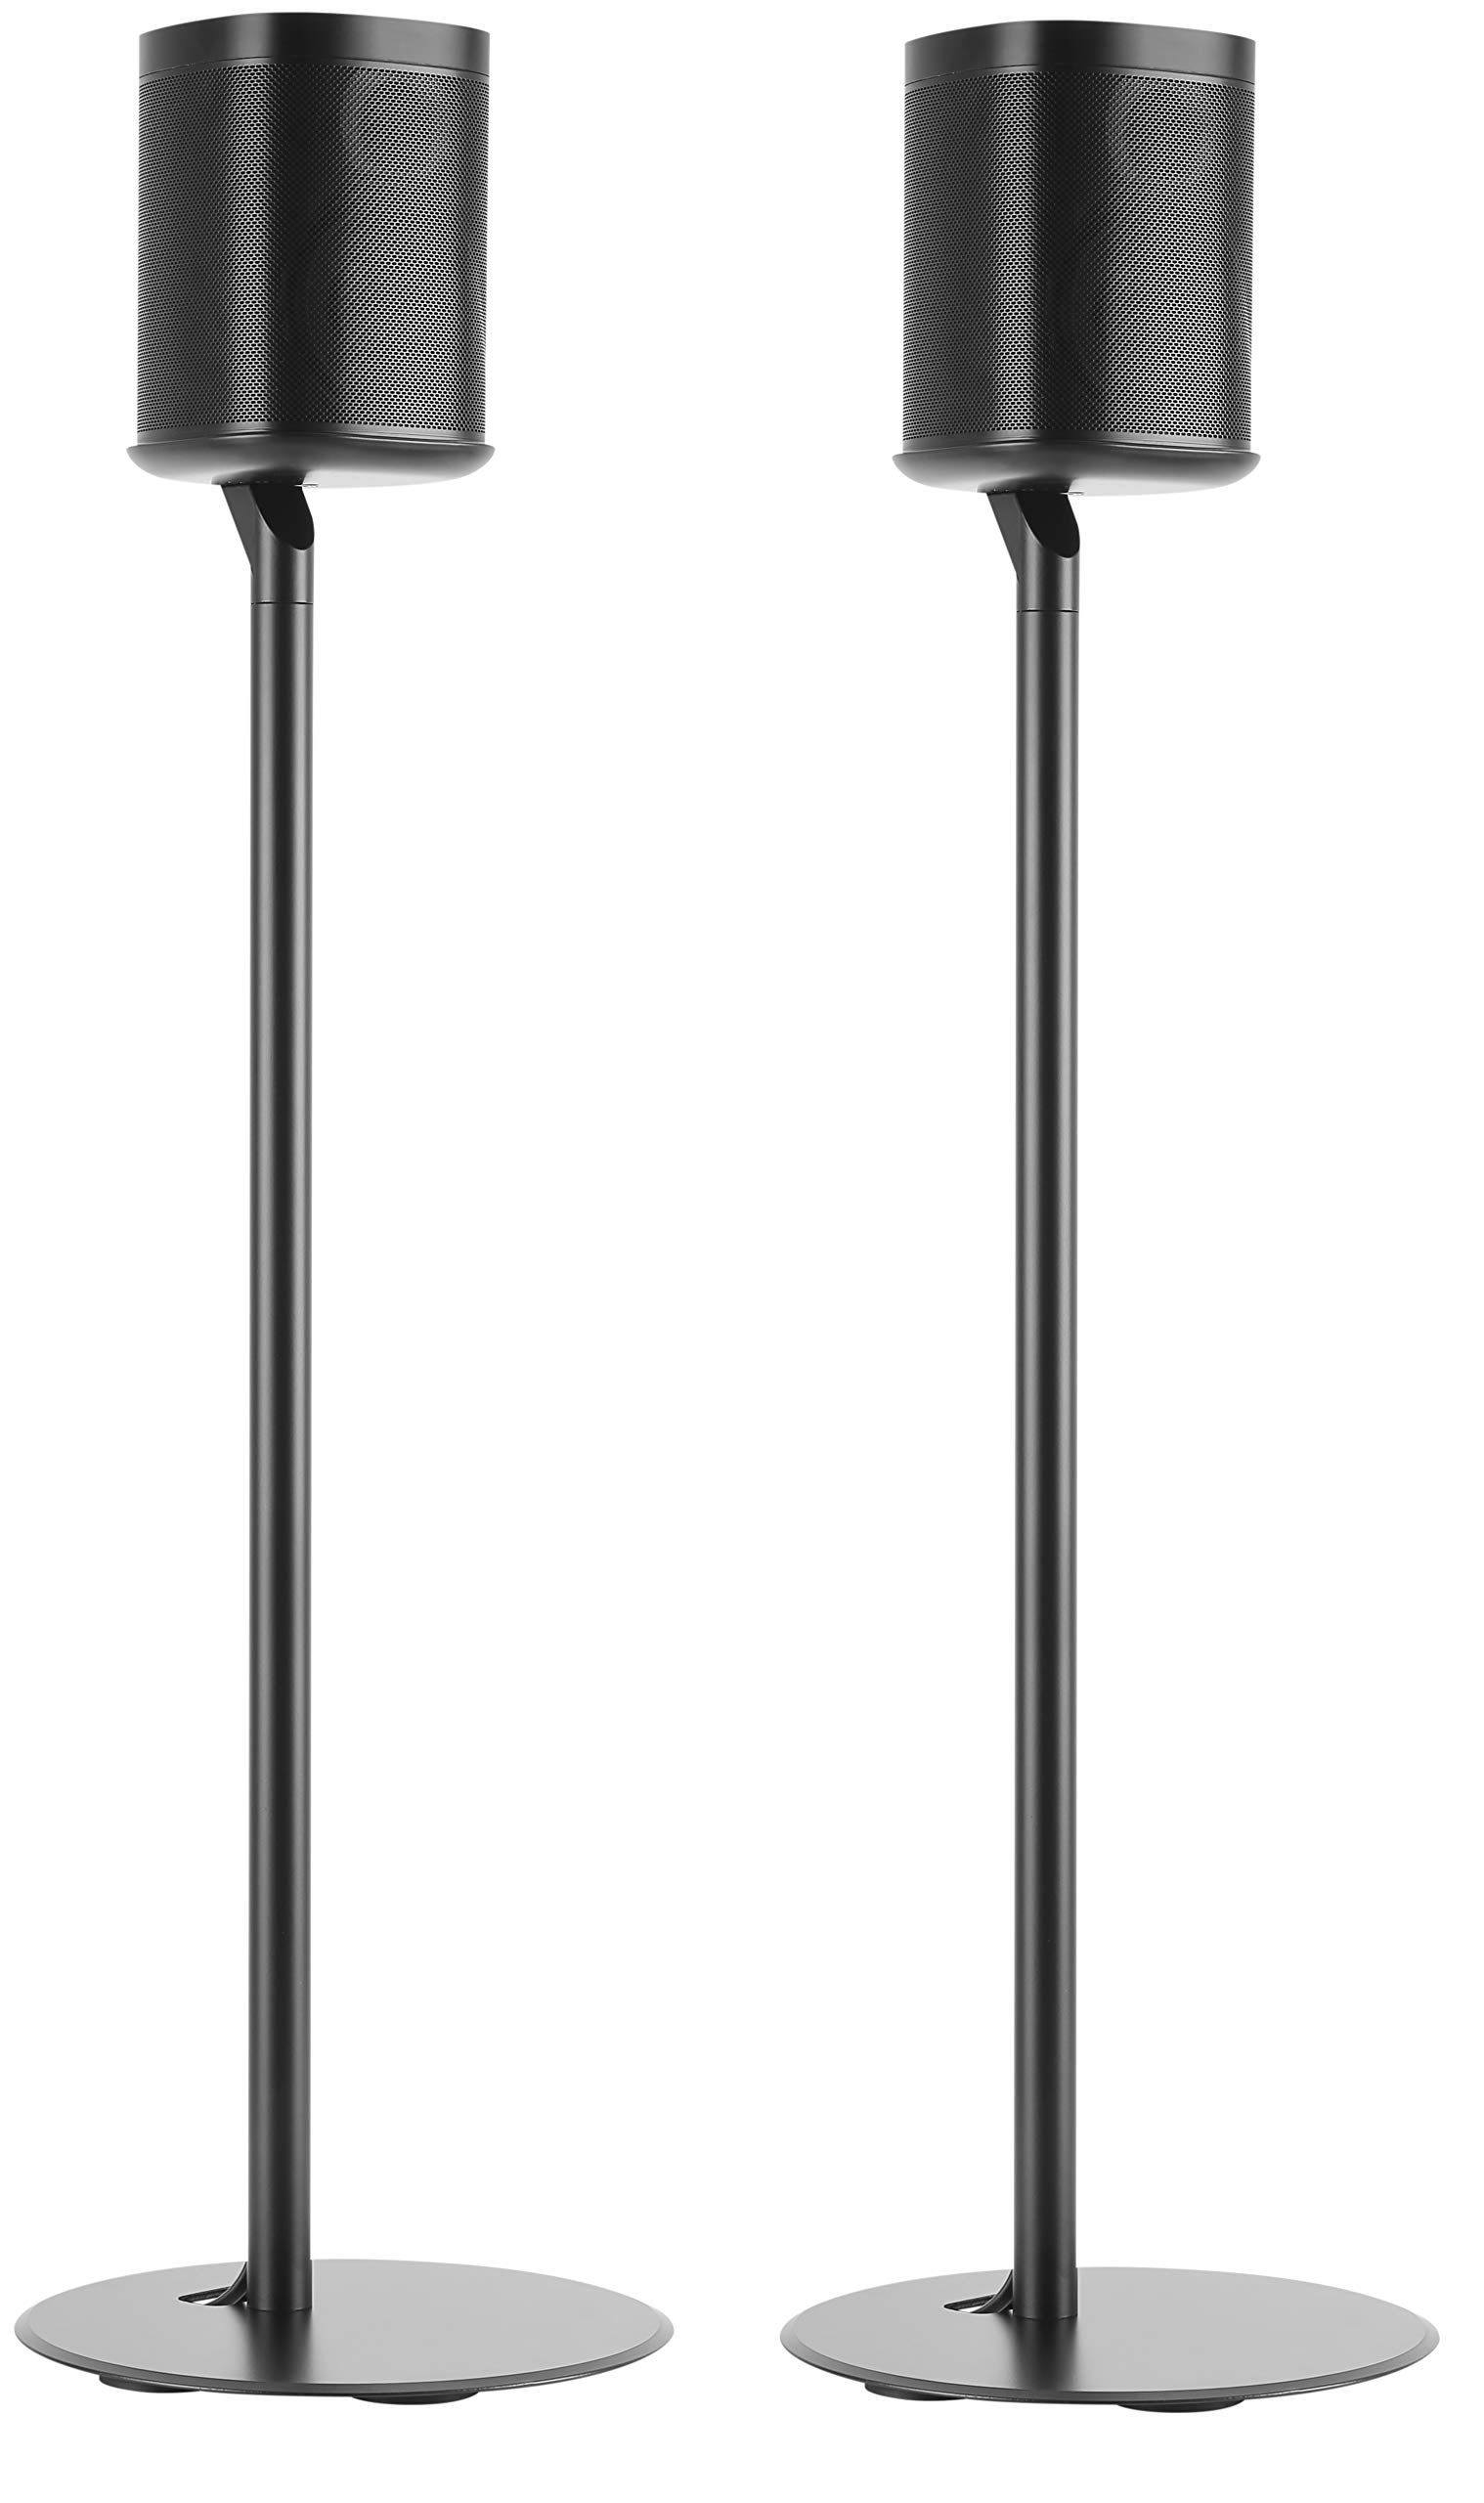 ynVISION Floor Stand for Sonos One, One SL and Play:1 Speaker | 2 Pack | YN-ONE Pair (Black) by ynVISION